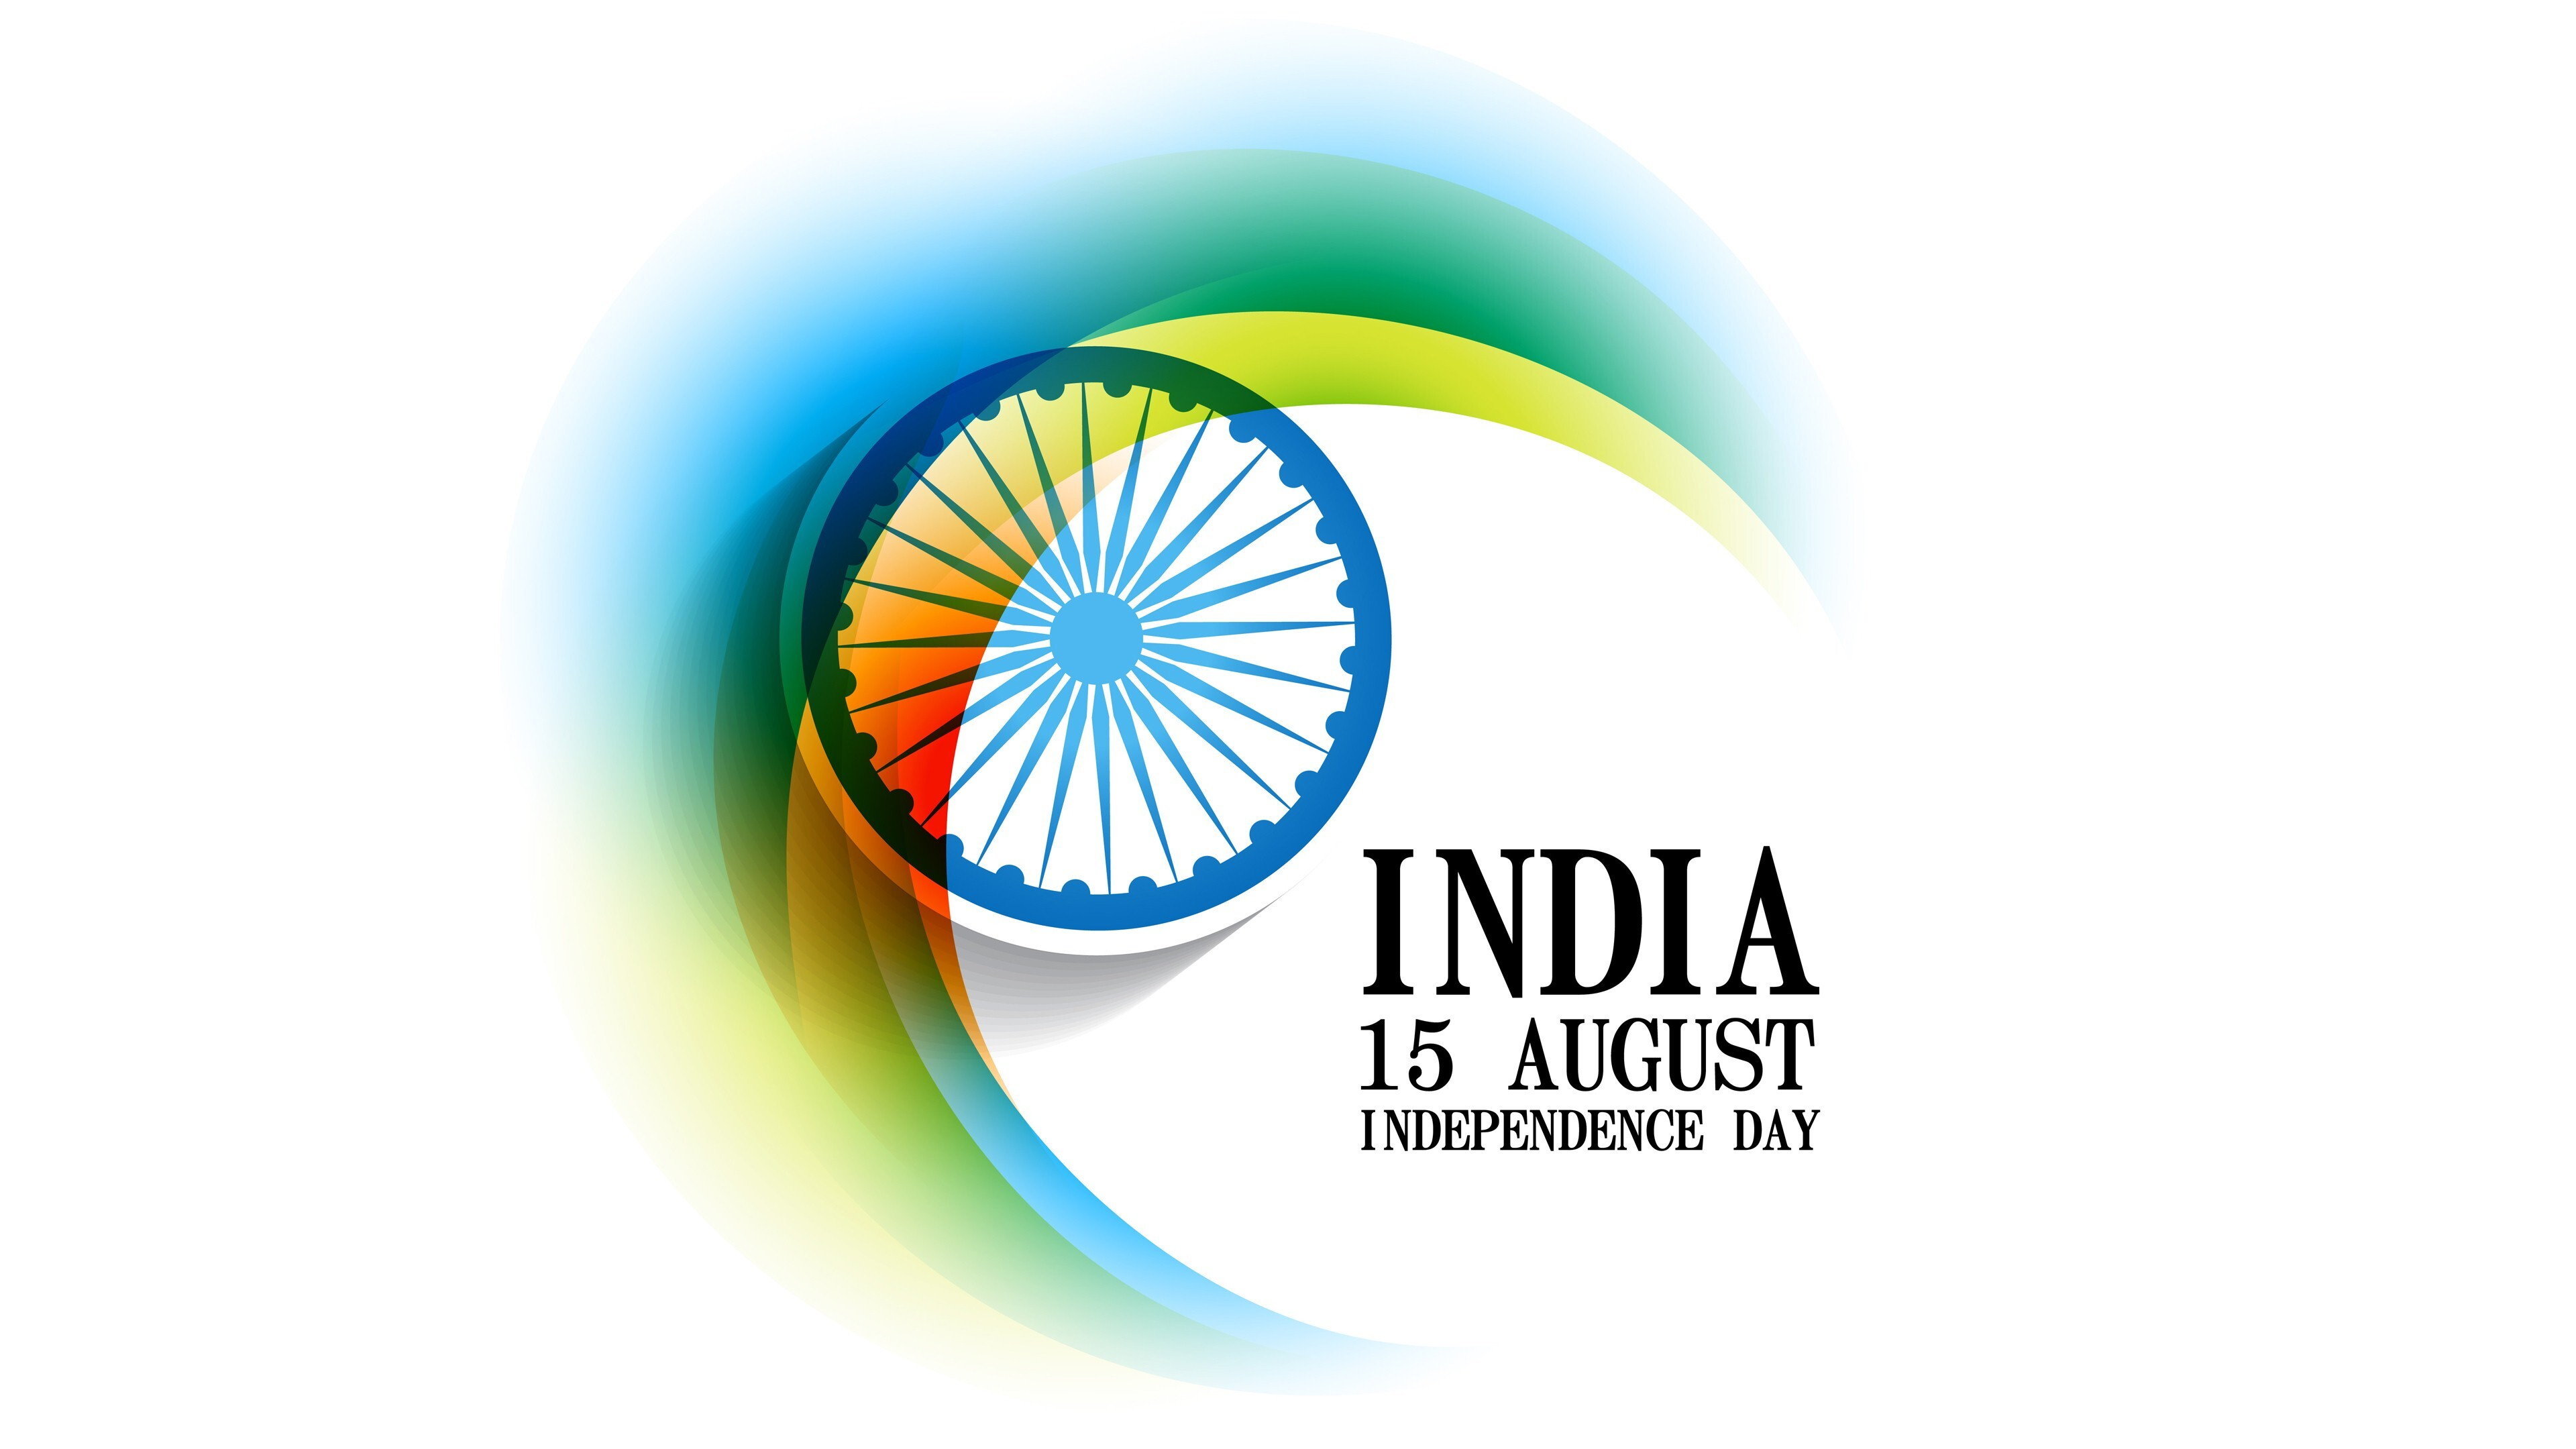 15 August Independence Day Hd Wallpaper: Independence Day 15 August 4K Images